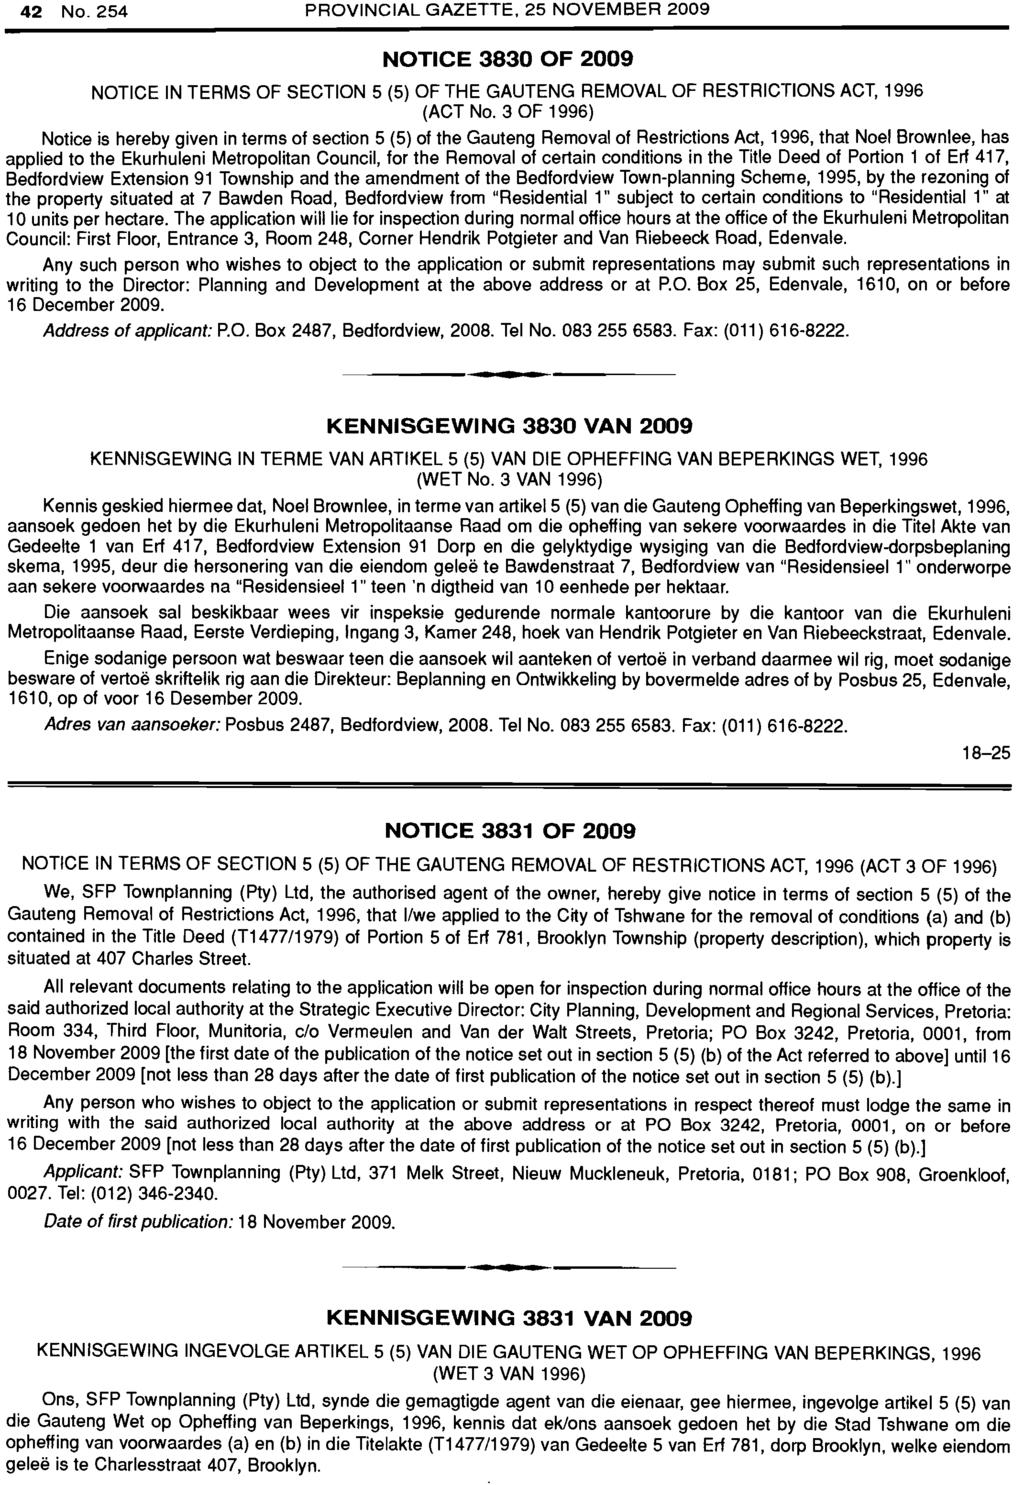 42 No. 254 PROVINCIAL GAZETTE, 25 NOVEMBER 2009 NOTICE 3830 OF 2009 NOTICE IN TERMS OF SECTION 5 (5) OF THE GAUTENG REMOVAL OF RESTRICTIONS ACT, 1996 (ACT No.